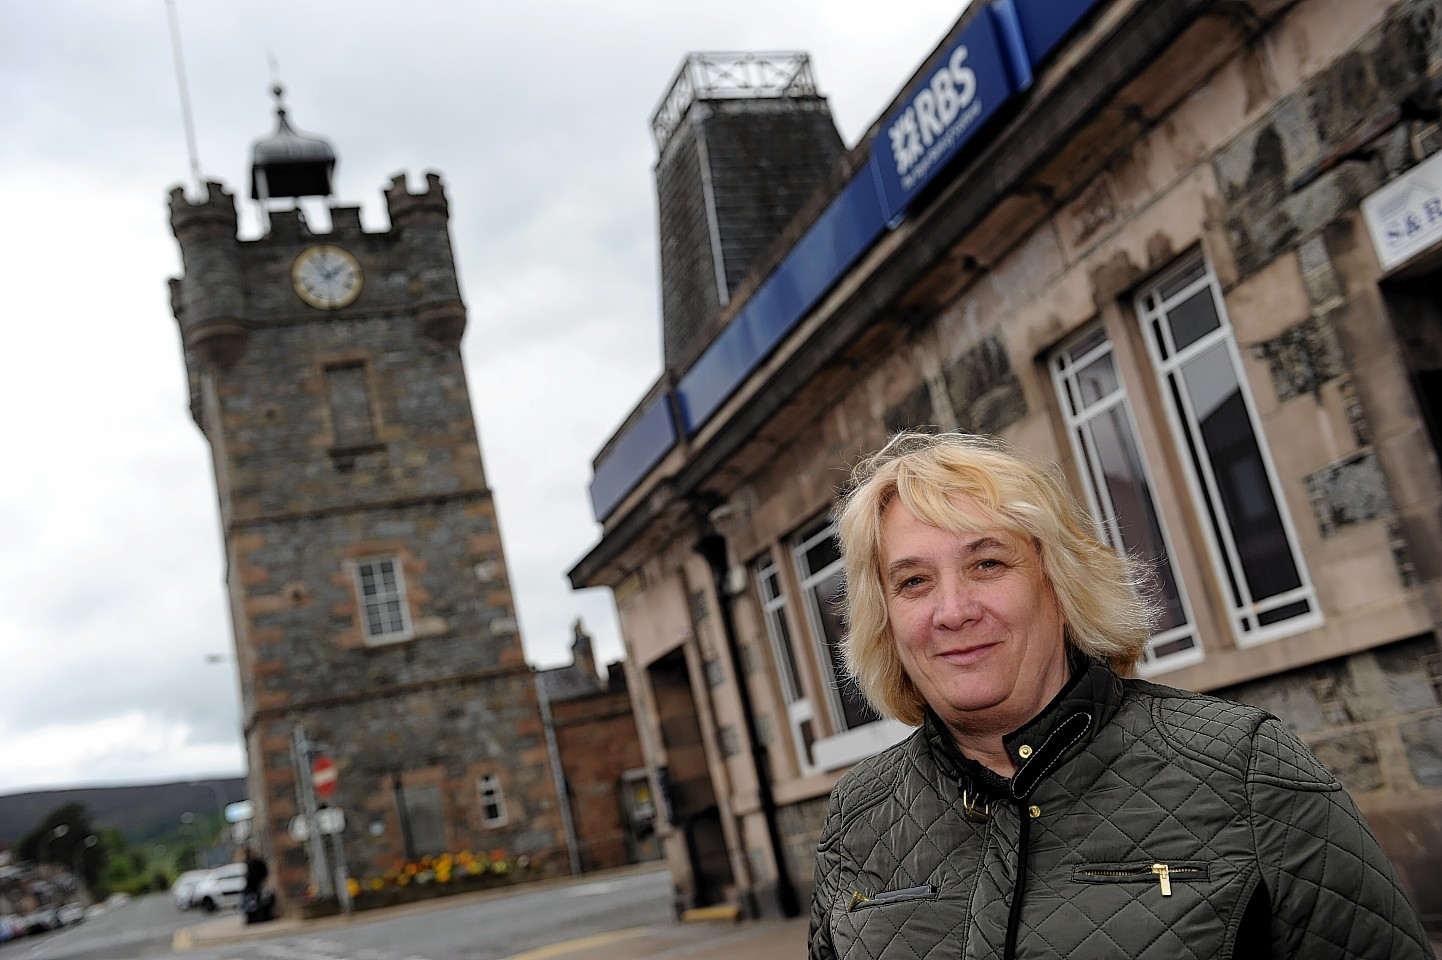 Lydia Williamson outside the now closed Royal Bank of Scotland in Dufftown.